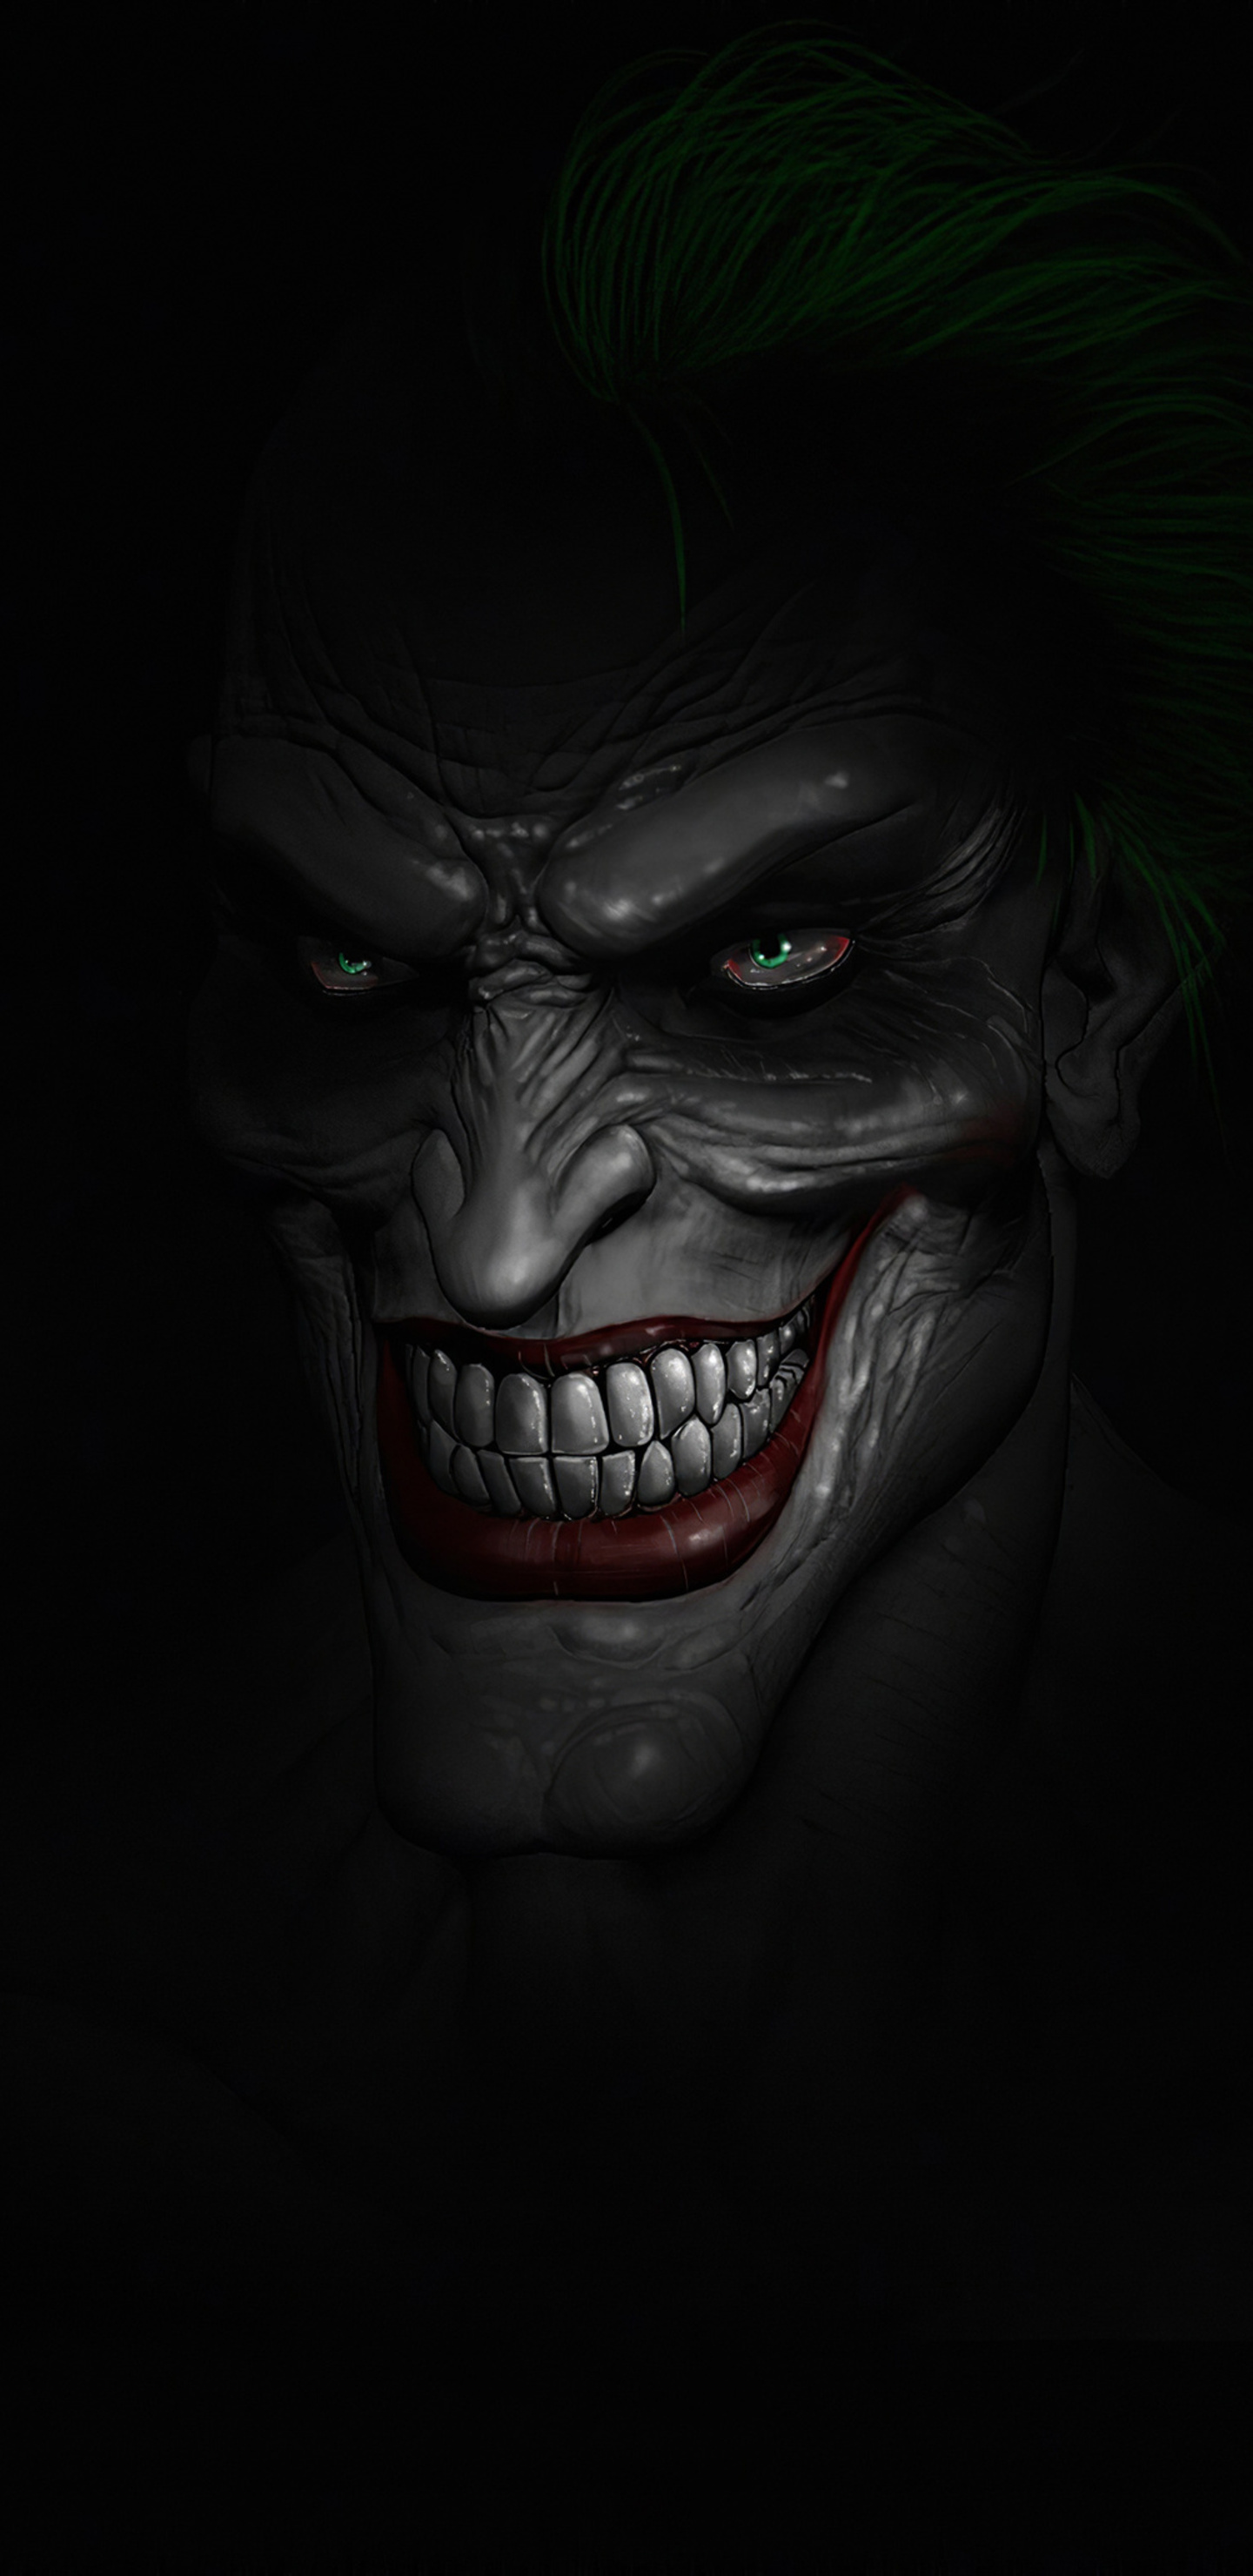 1440x2960 Joker Dark Minimalism 4k Samsung Galaxy Note 9 8 S9 S8 S8 Qhd Hd 4k Wallpapers Images Backgrounds Photos And Pictures